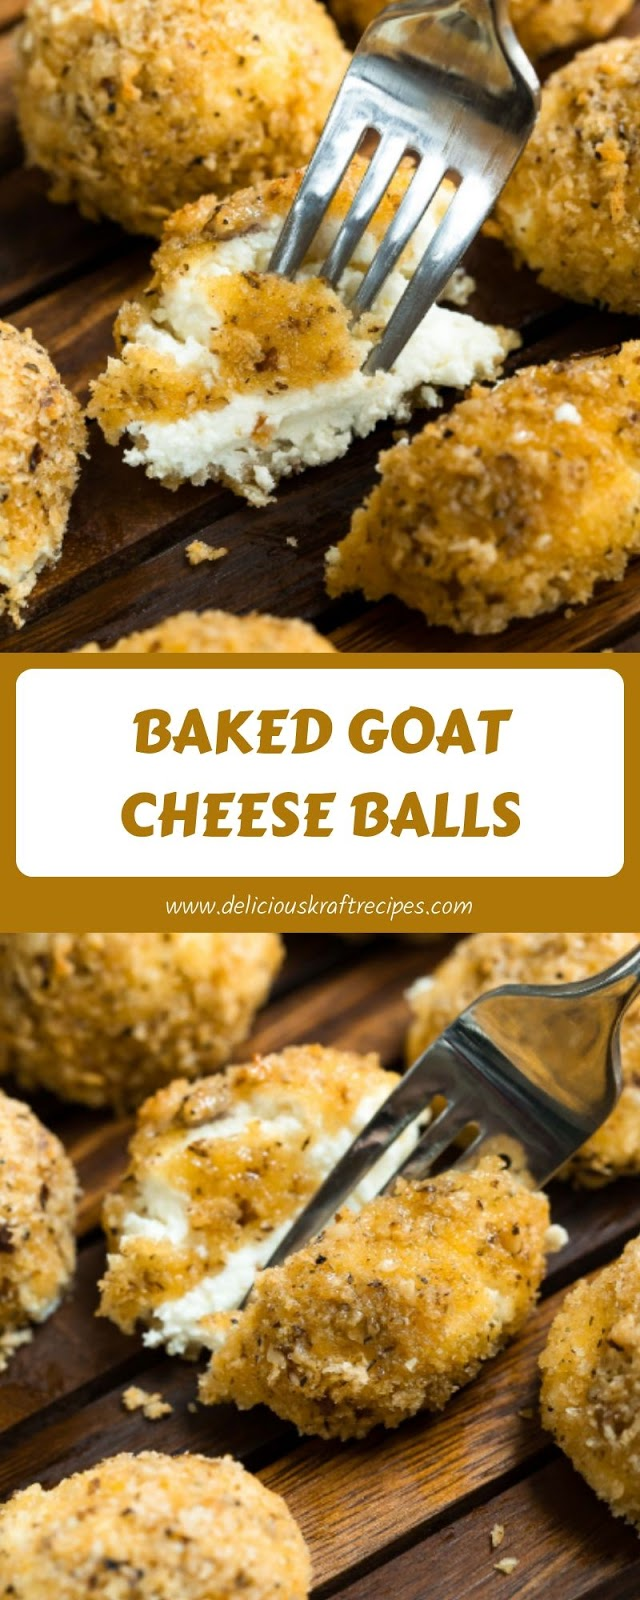 BAKED GOAT CHEESE BALLS